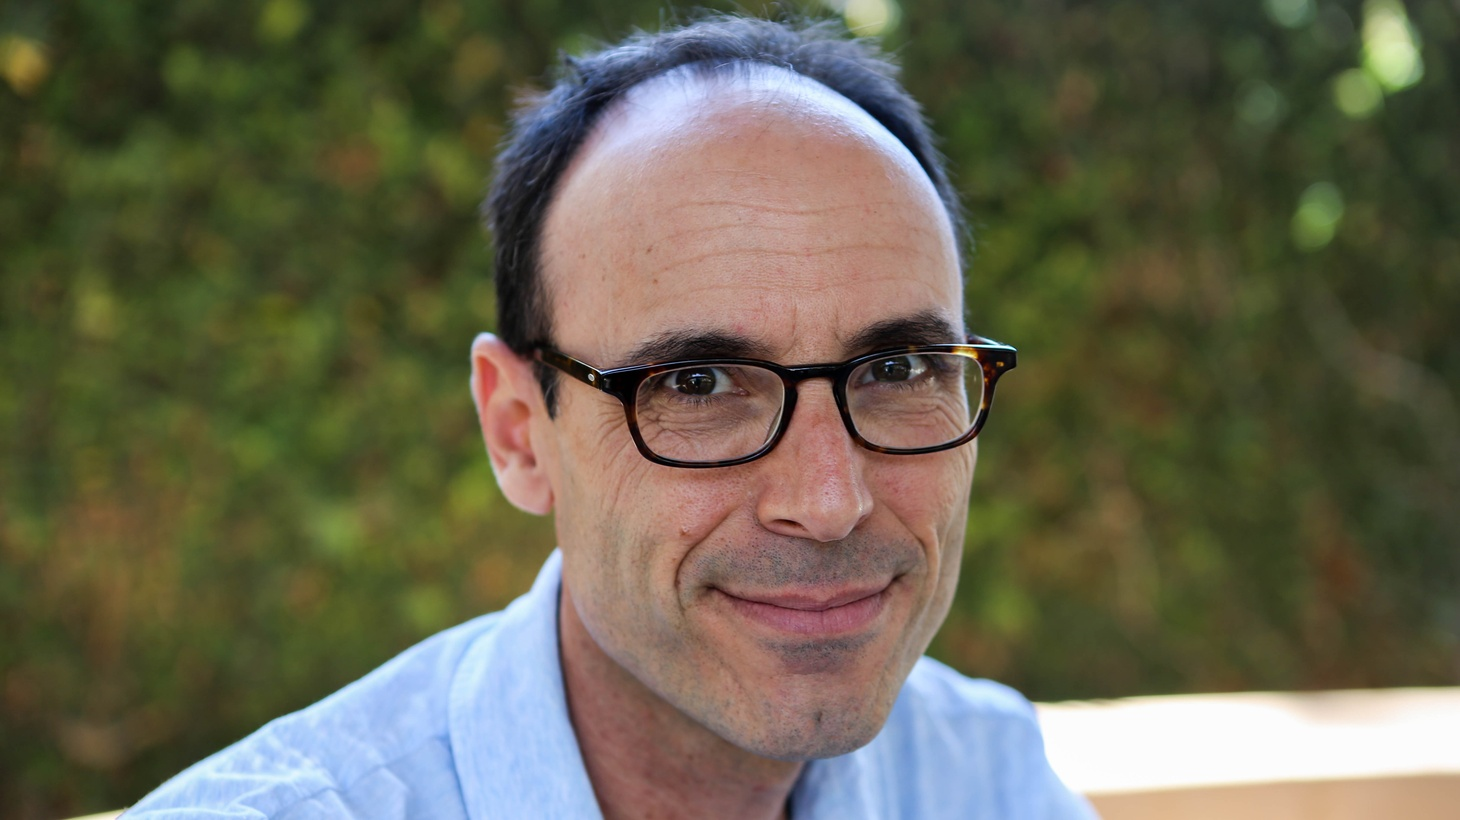 The UCLA Law professor discusses his newest book about the rights of corporations.